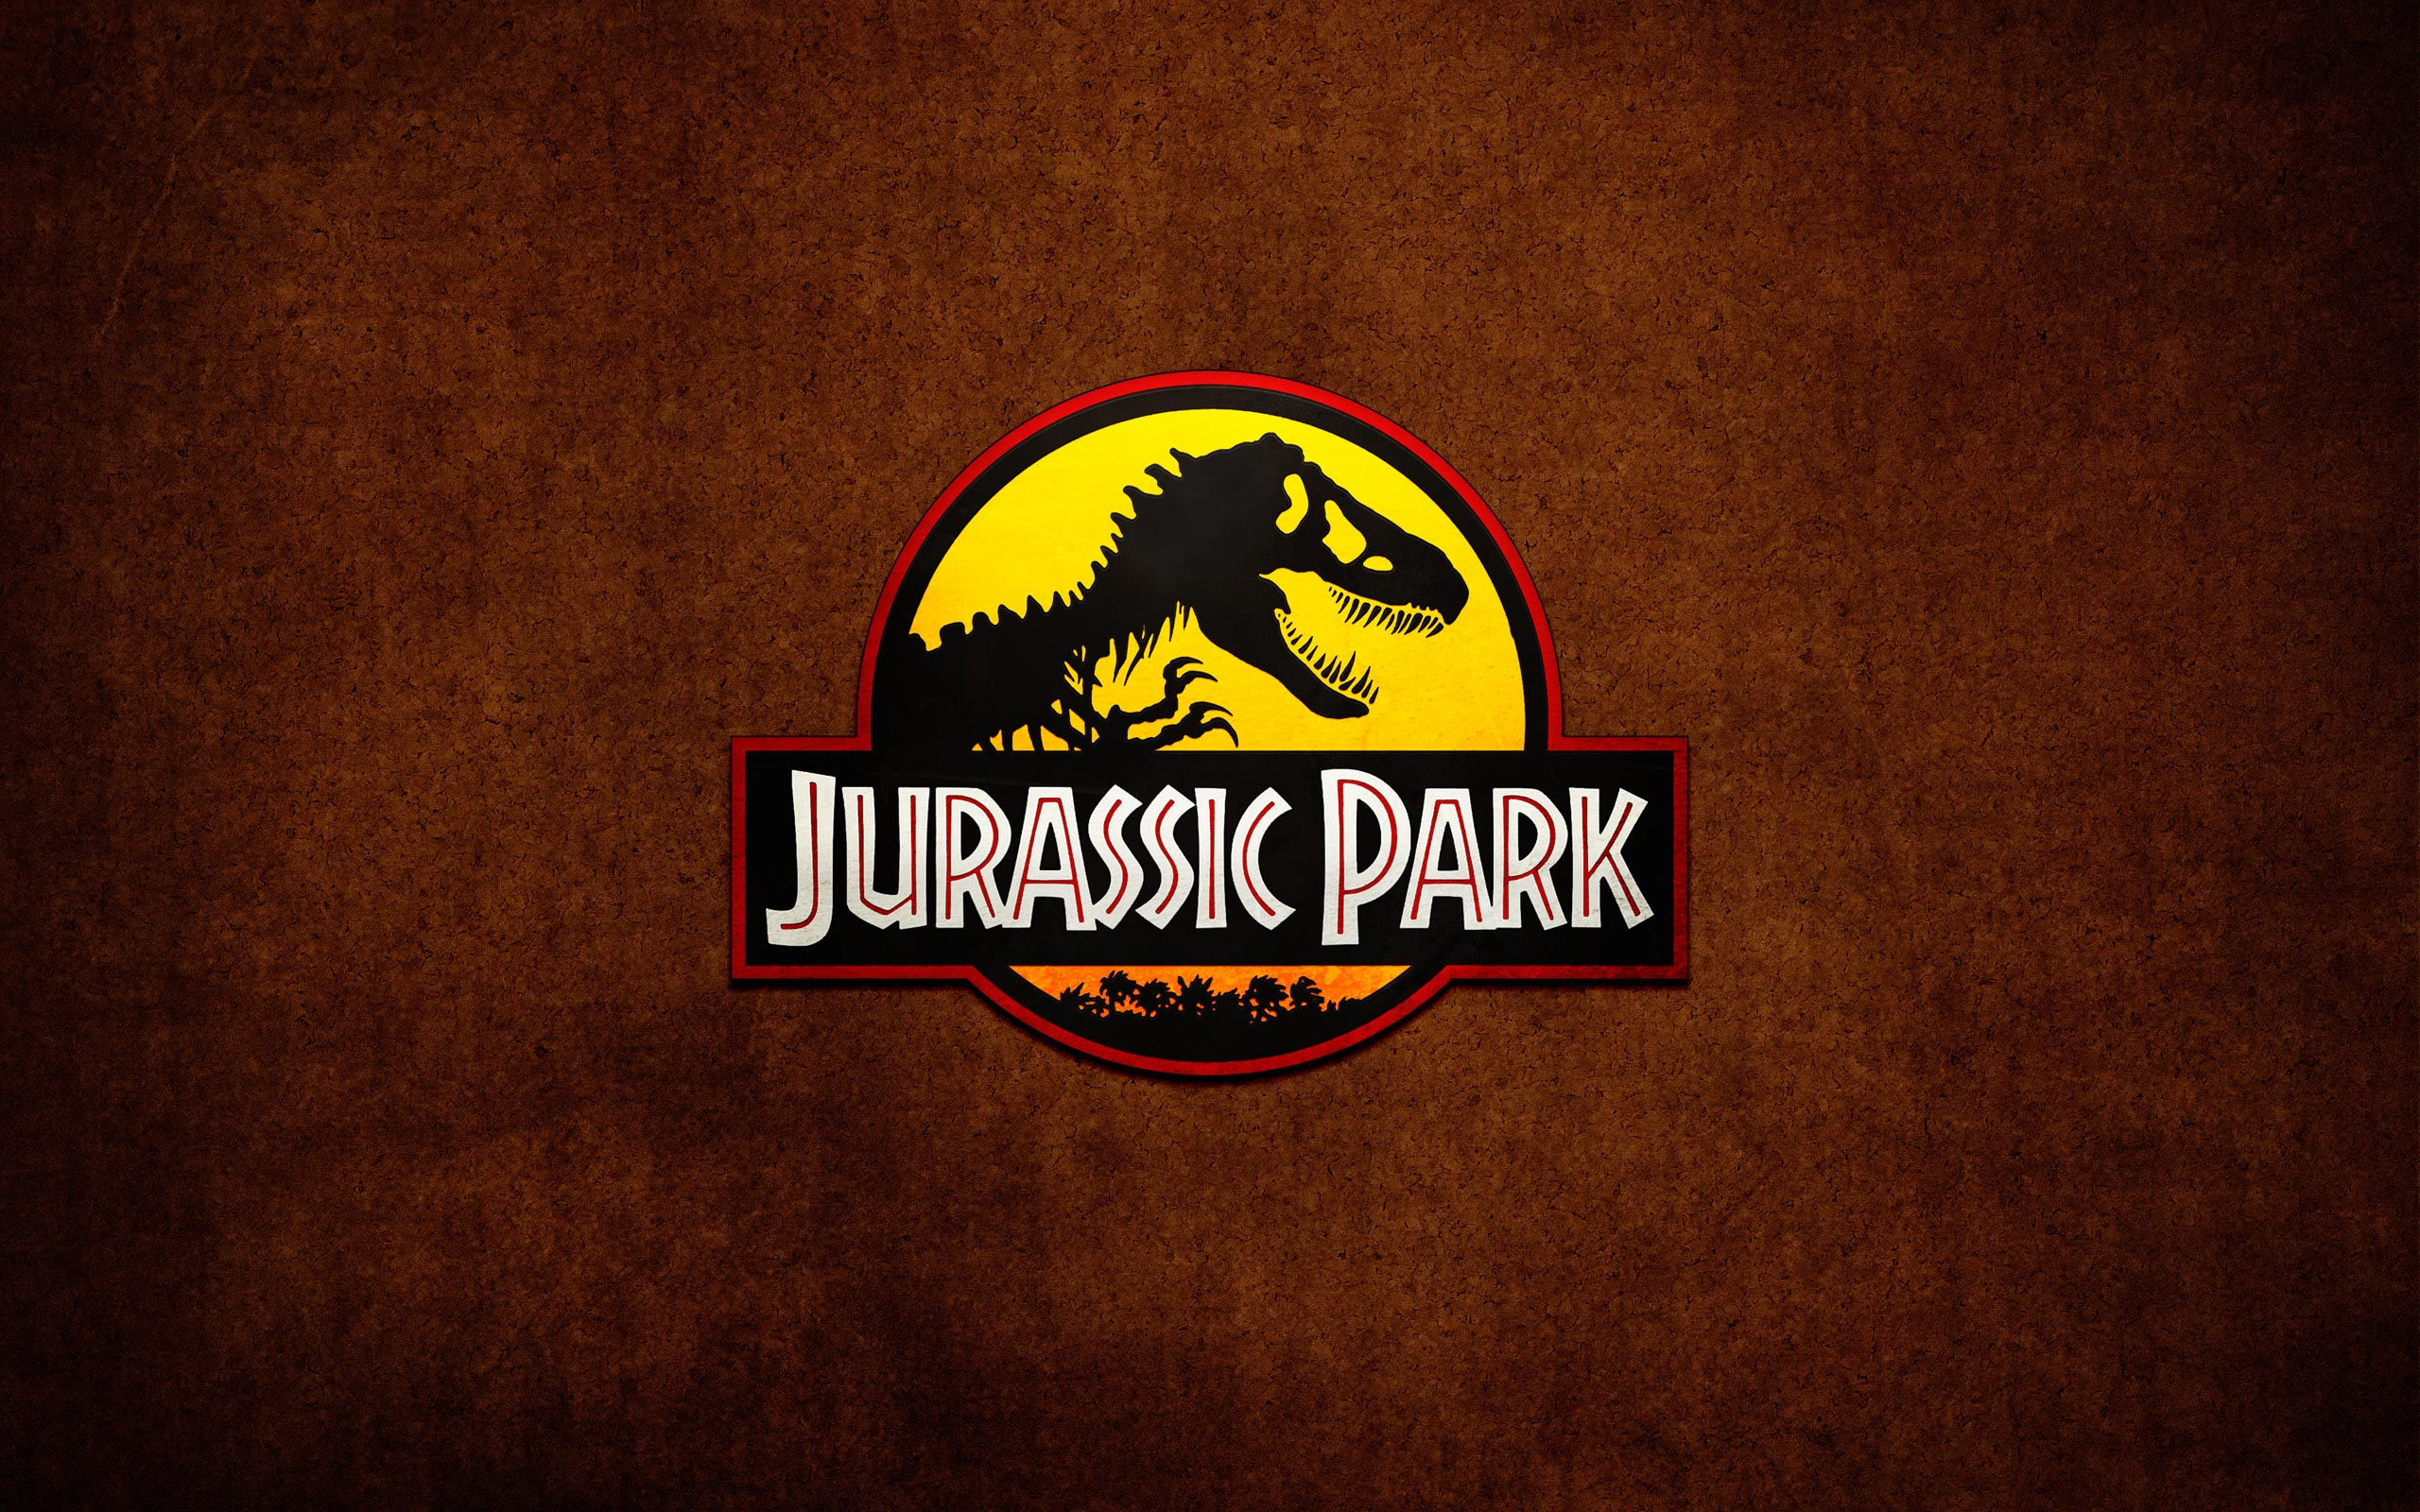 Jurassic Park Wallpapers - WallpaperSafari